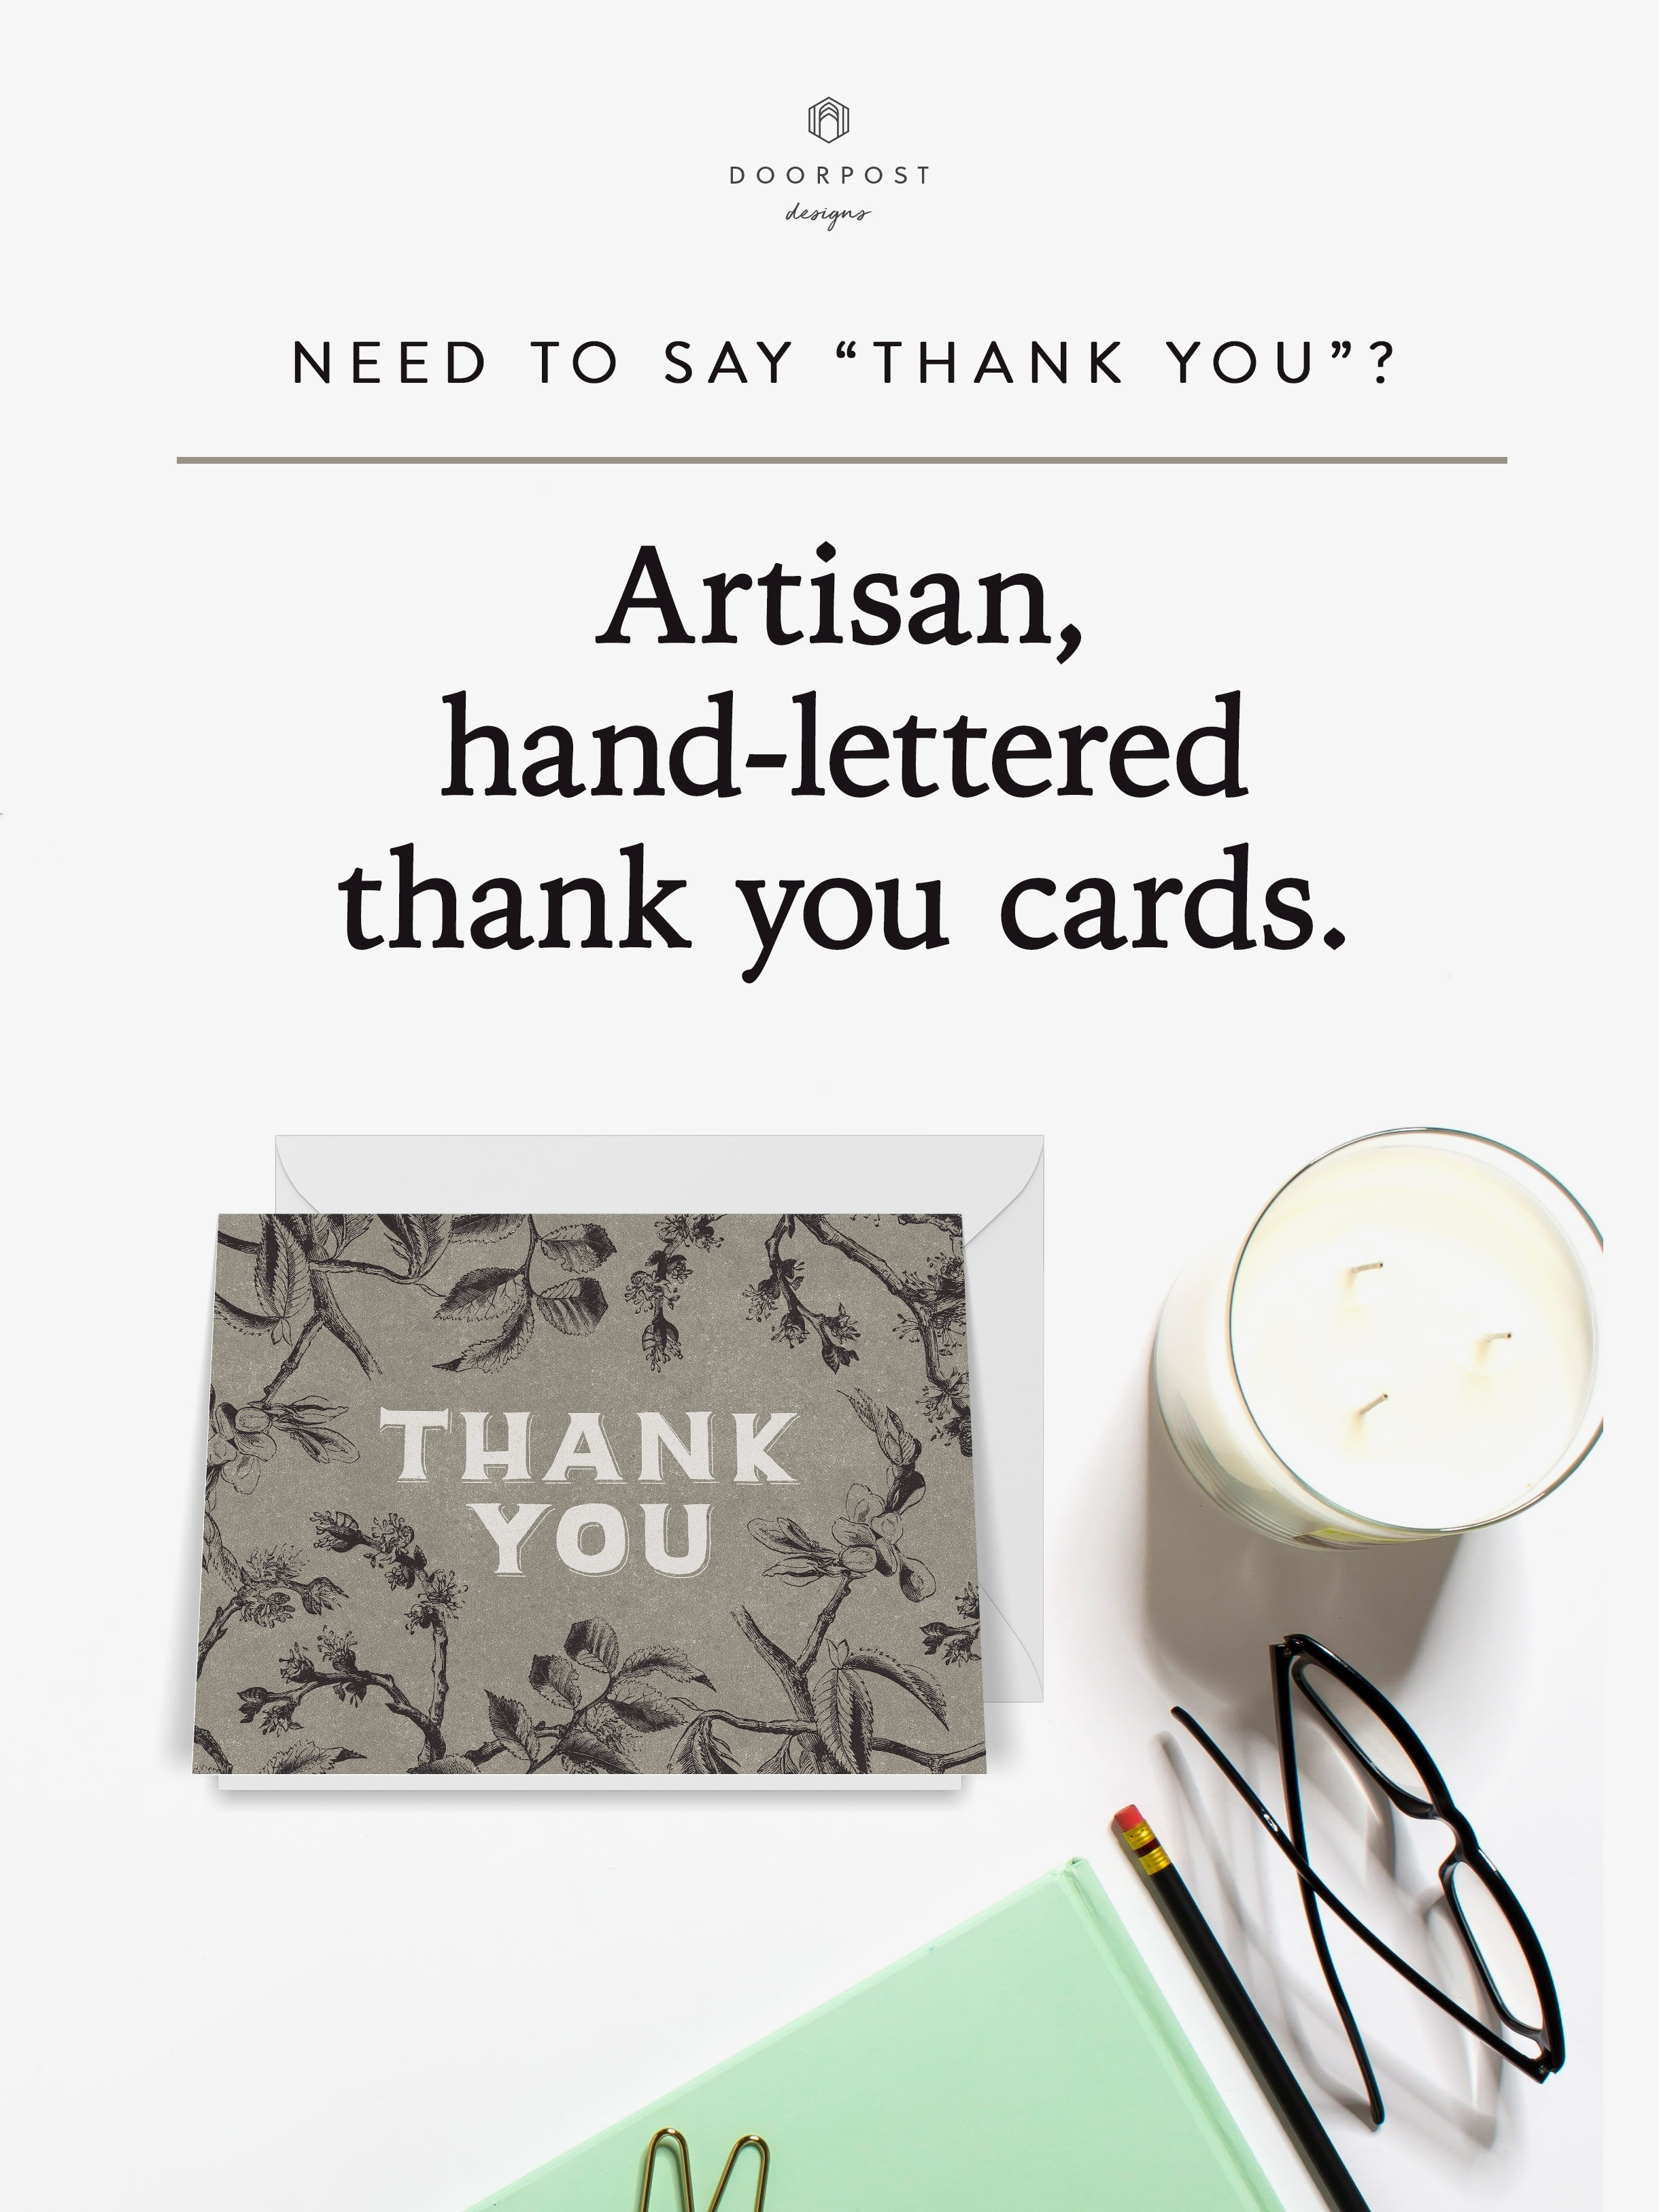 Artisan, hand-lettered thank you cards